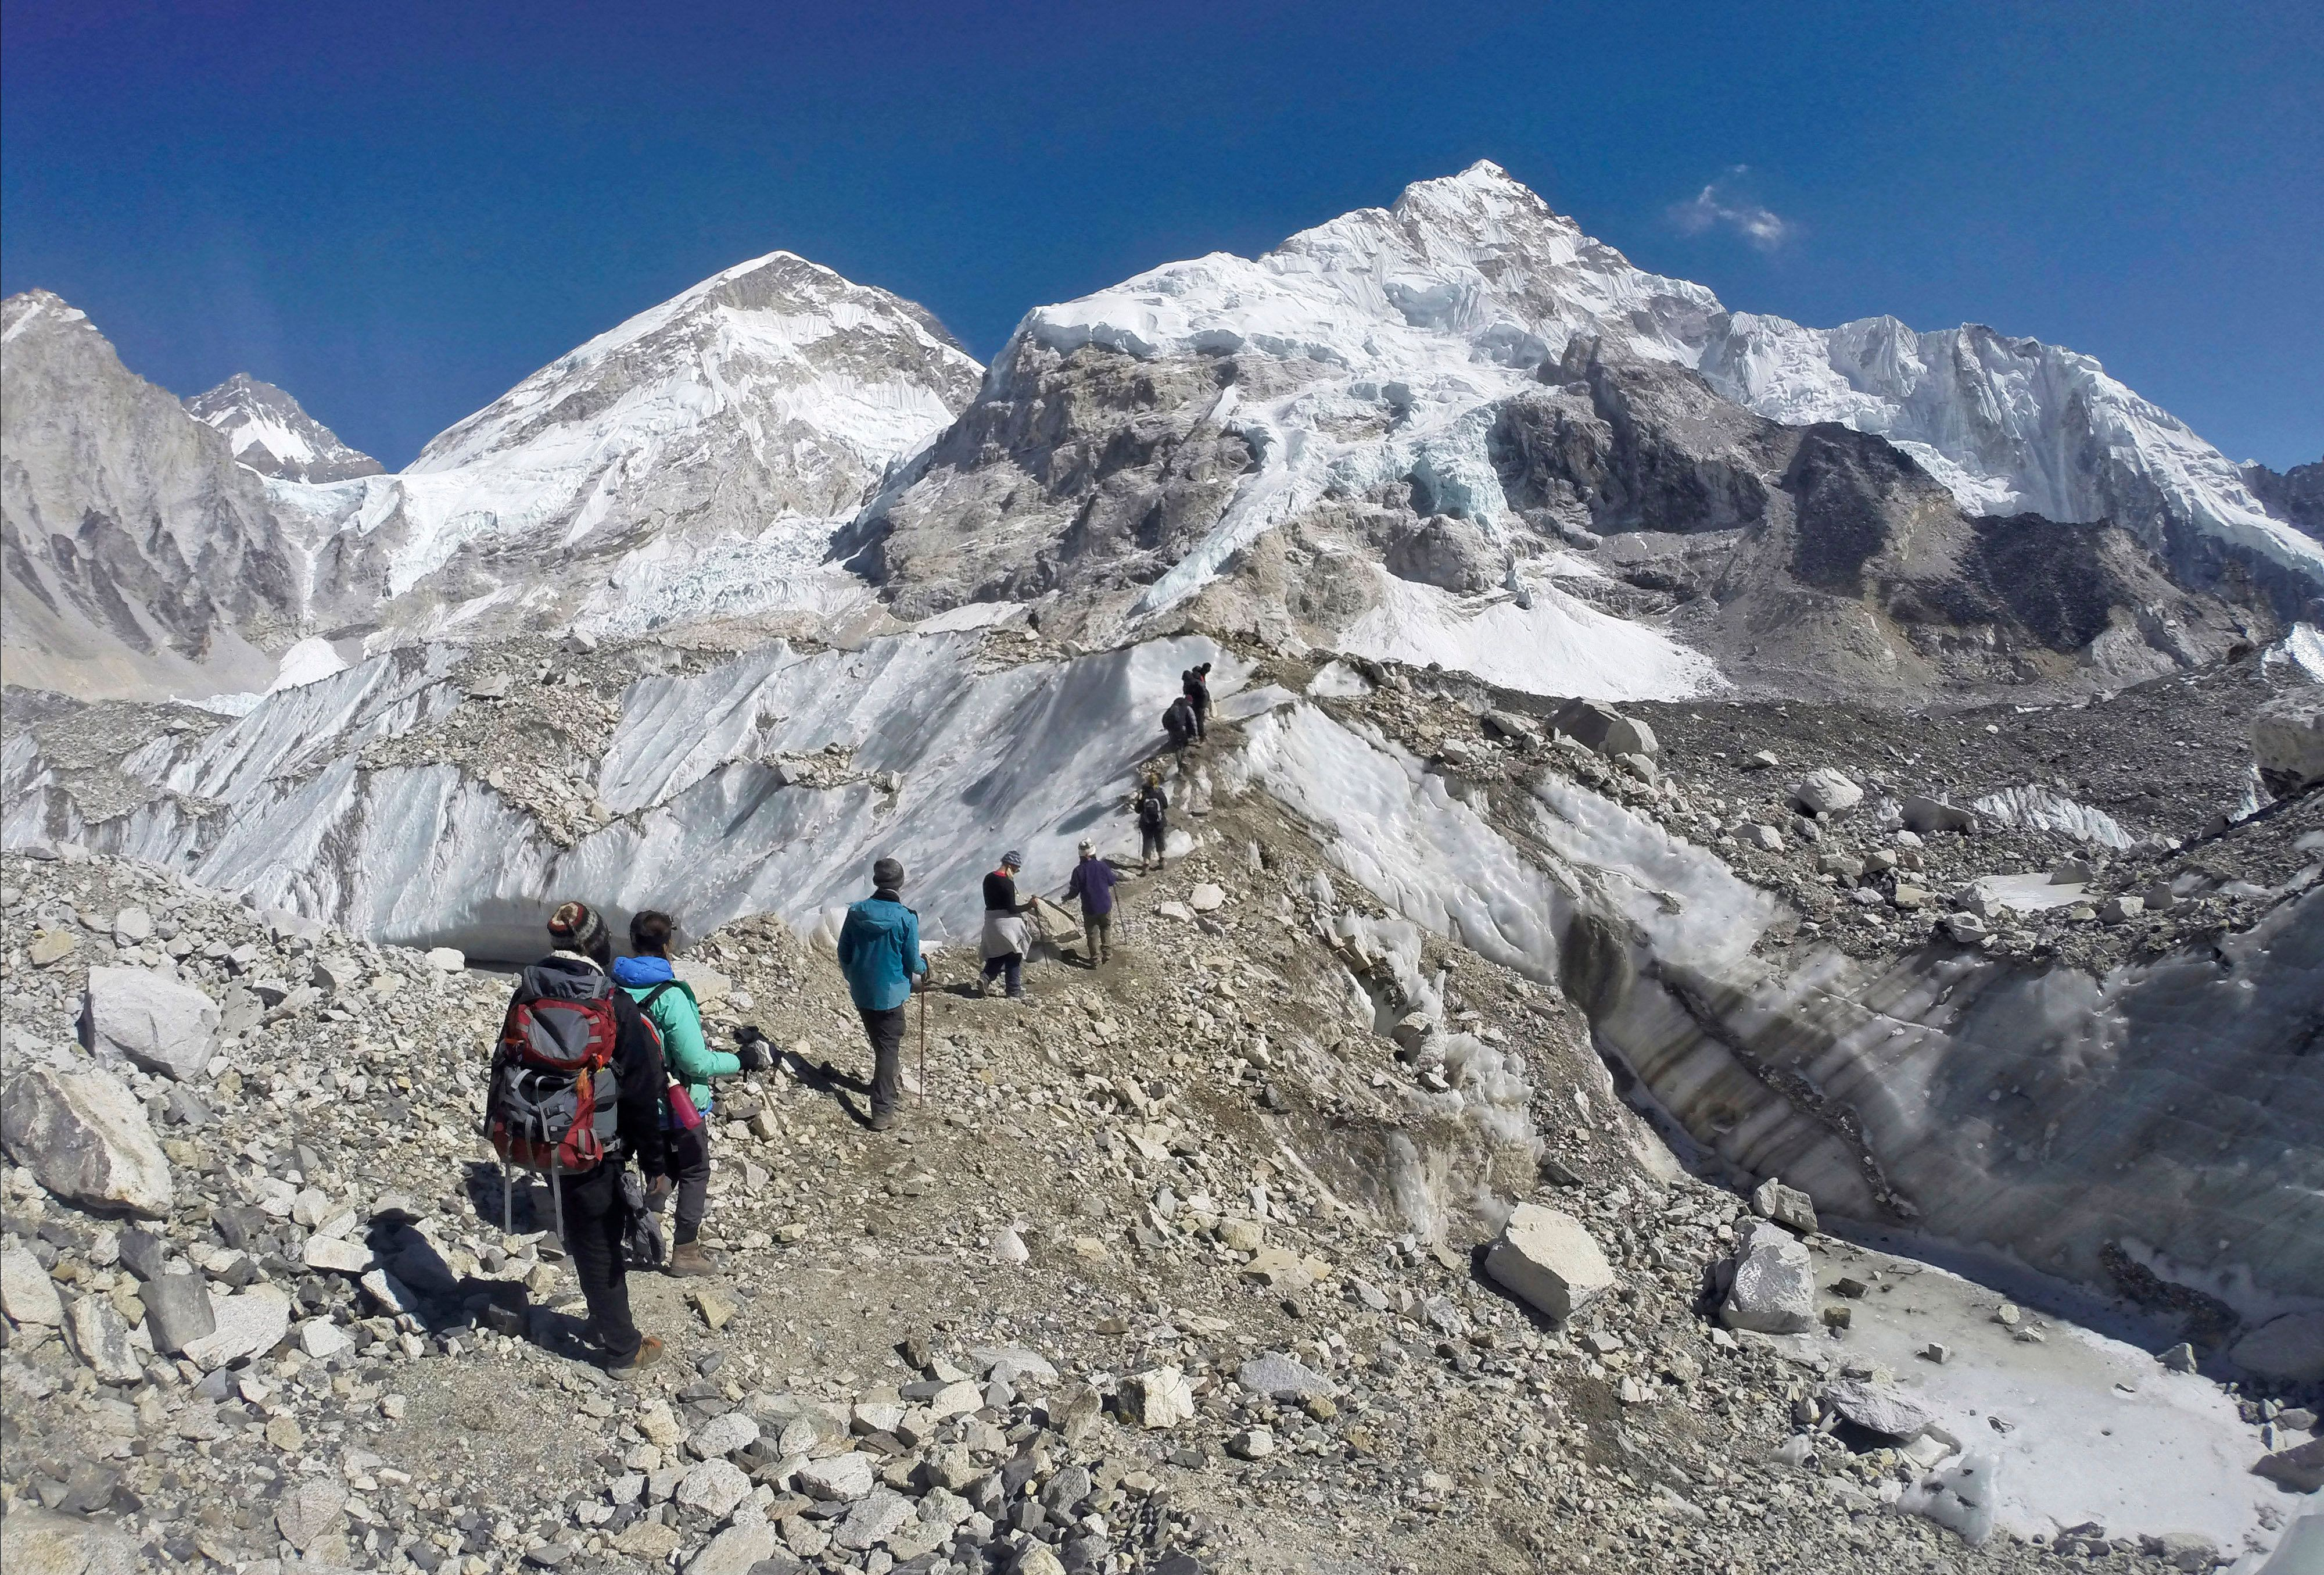 FILE - In this Monday, Feb. 22, 2016 file photo, trekkers pass through a glacier at the Mount Everest base camp, Nepal. One-third of Himalayan glaciers will melt by the end of the century due to climate change, threatening water sources for 1.9 billion people, even if current efforts to reduce climate change succeed, according to an assessment released Monday, Feb. 4, 2019. by the International Centre for Integrated Mountain Development. (AP Photo/Tashi Sherpa, file)